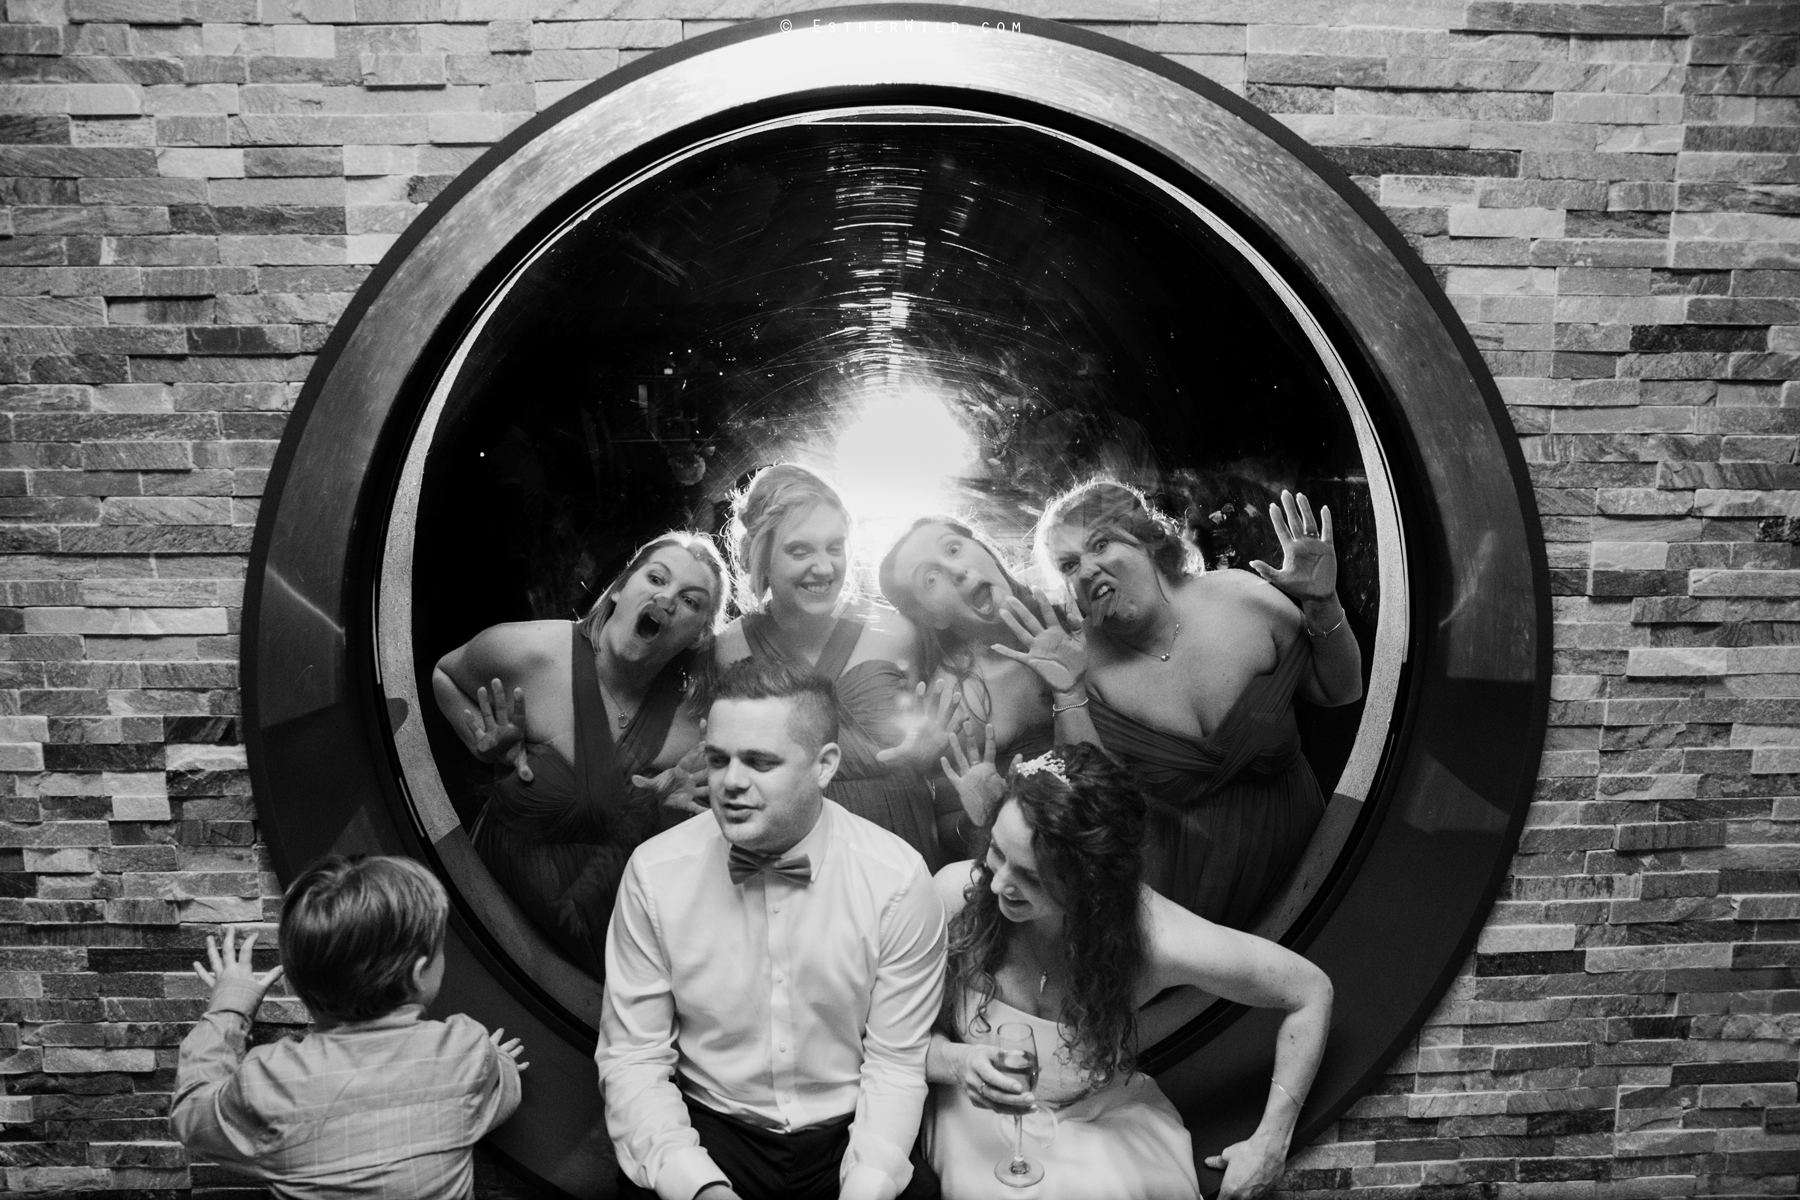 The_BoatHouse_Wedding_Venue_Ormesby_Norfolk_Broads_Boat_Wedding_Photography_Esther_Wild_Photographer_IMG_3798-1.jpg